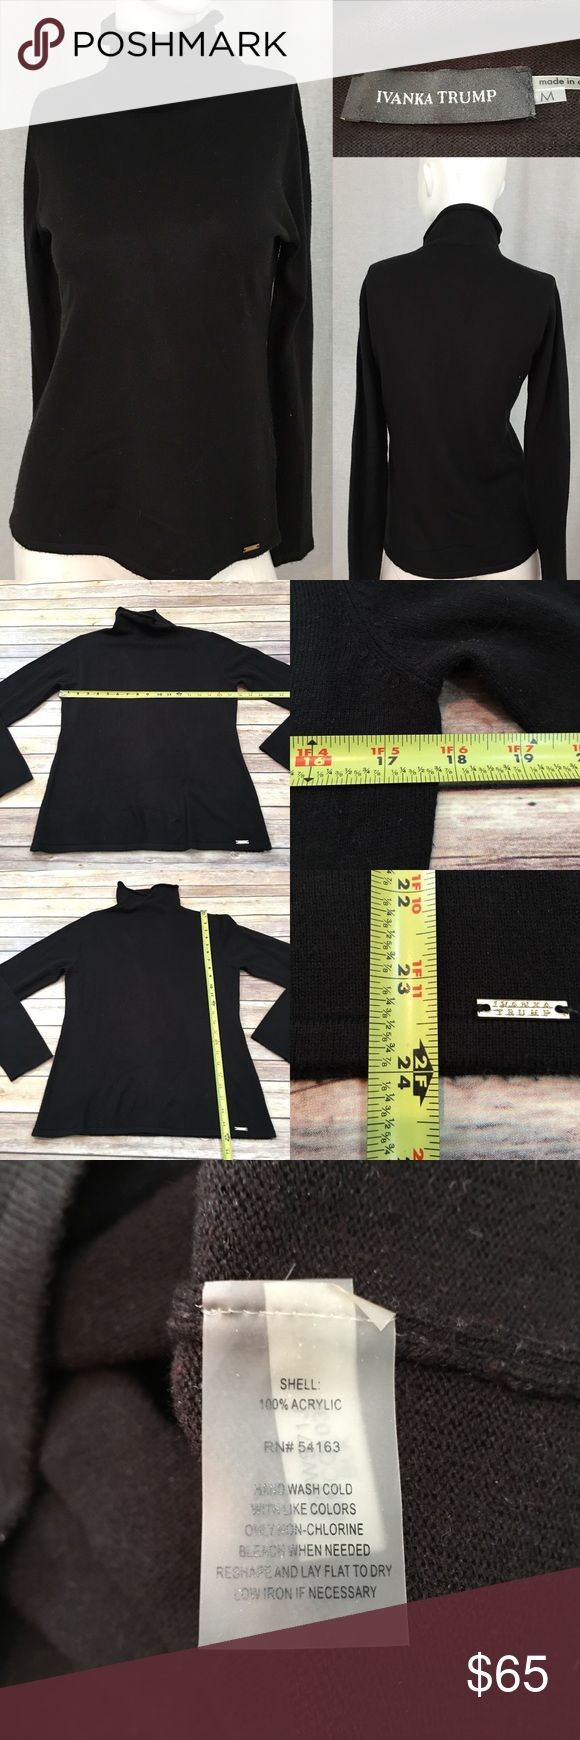 Size Medium Ivank Trump Black Turtleneck Sweater • Measurements are in photos  • Material tag is in photos • Normal wash wear, has some mild piling, no other flaws • Soft • Long Sleeve  A2/60  Thank you for shopping my closet! Ivanka Trump Sweaters Cowl & Turtlenecks